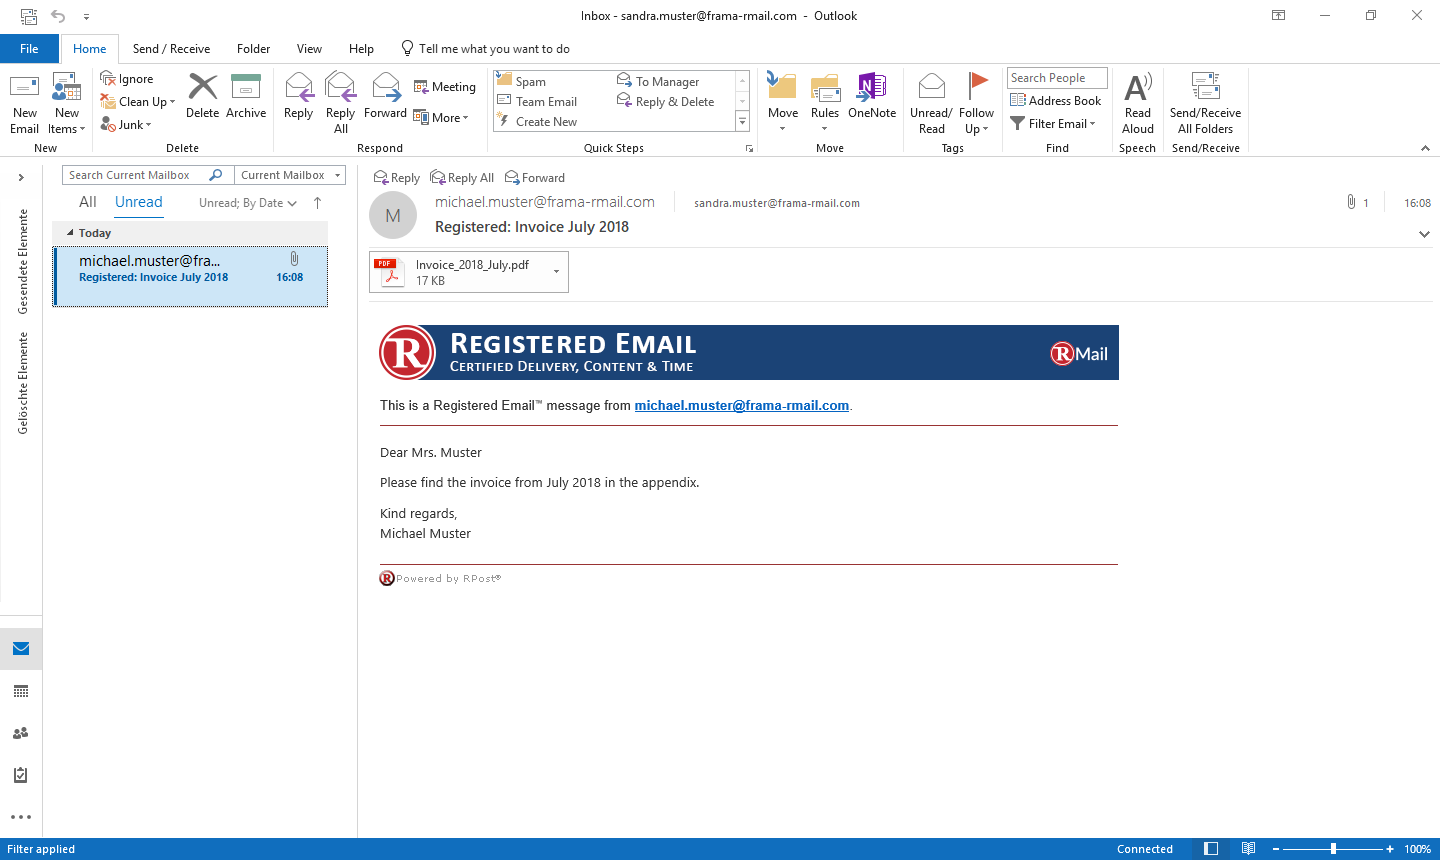 Recipient view of registered email